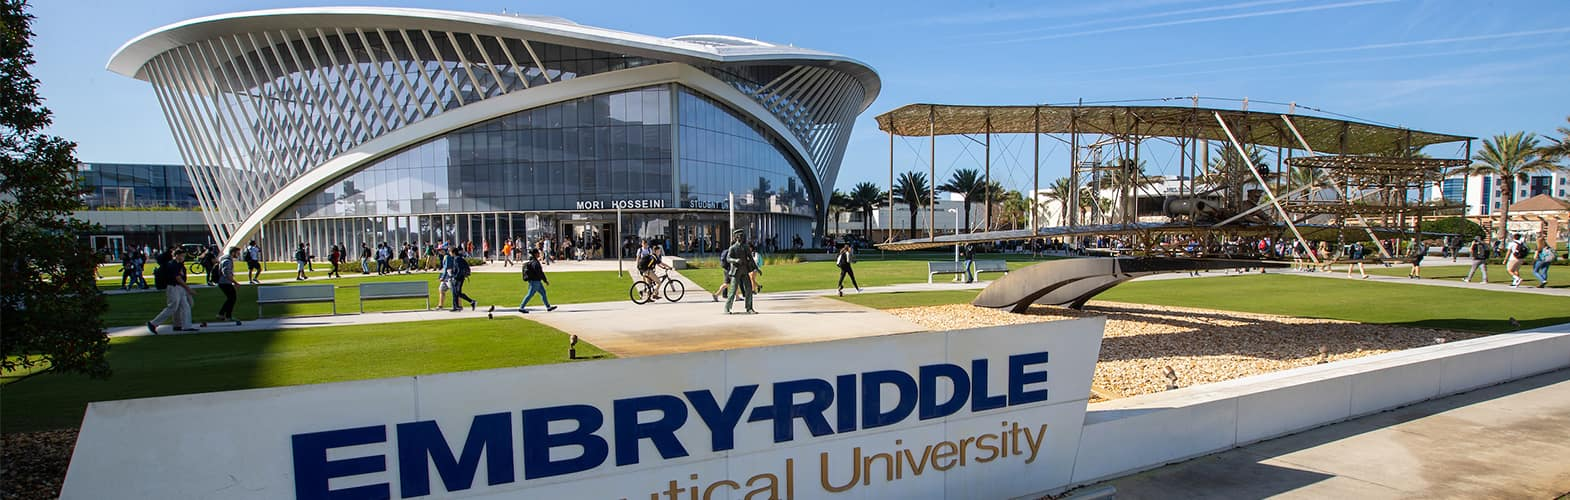 Embry-Riddle Student Union